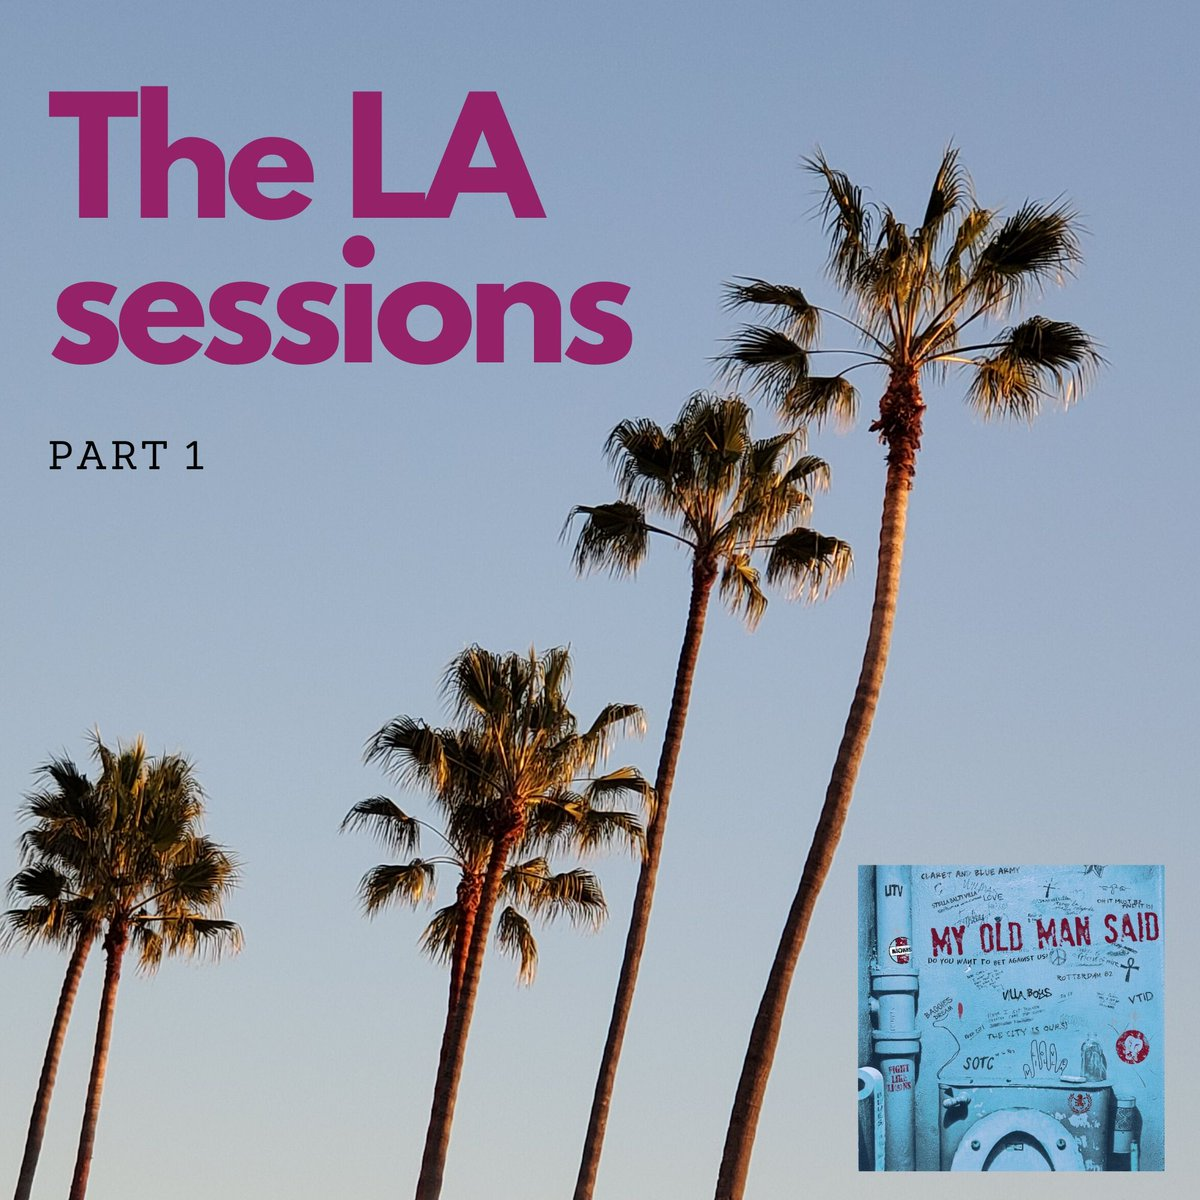 New MOMS🎙️show: LA Sessions Pt 1 - Aston Villa Life in Los Angeles with @bobstephenson & @oldmansaid  🗣️ #AVFC over the years, #LAFC, @ColinHanks' Sacramento ultimatum, Wembley hopes & cheek implants  Spotify:   Apple:   Please RT👍